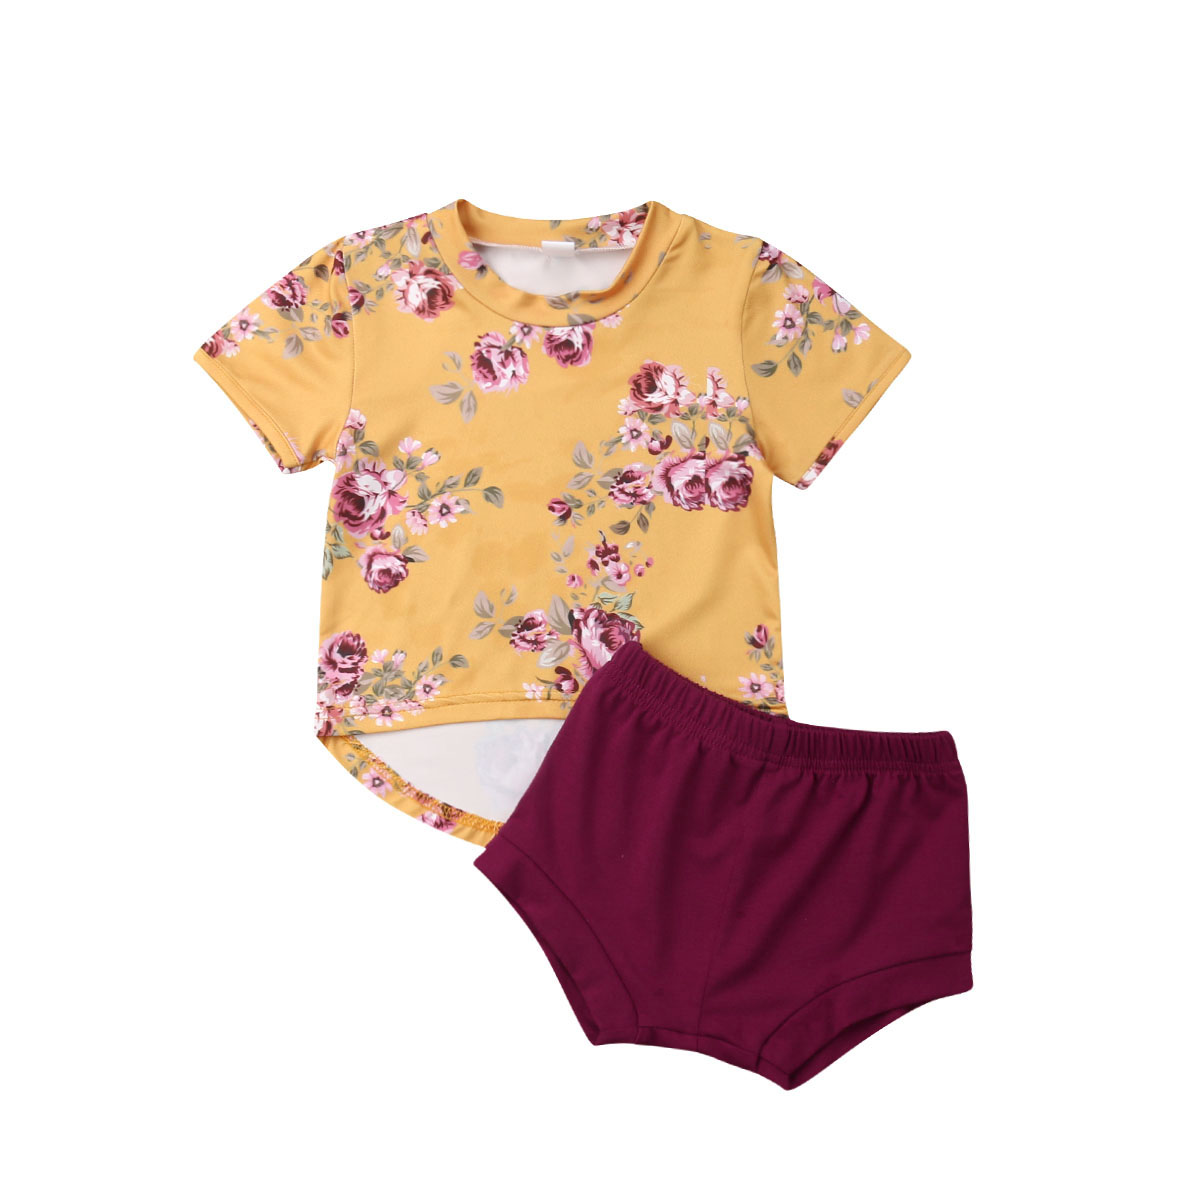 0-24 M Nette Neugeborene Baby Mädchen Kurzarm Floral T-shirt Tops Wein Rot Shorts Hose 2 Pcs Outfits Sommer Kleidung